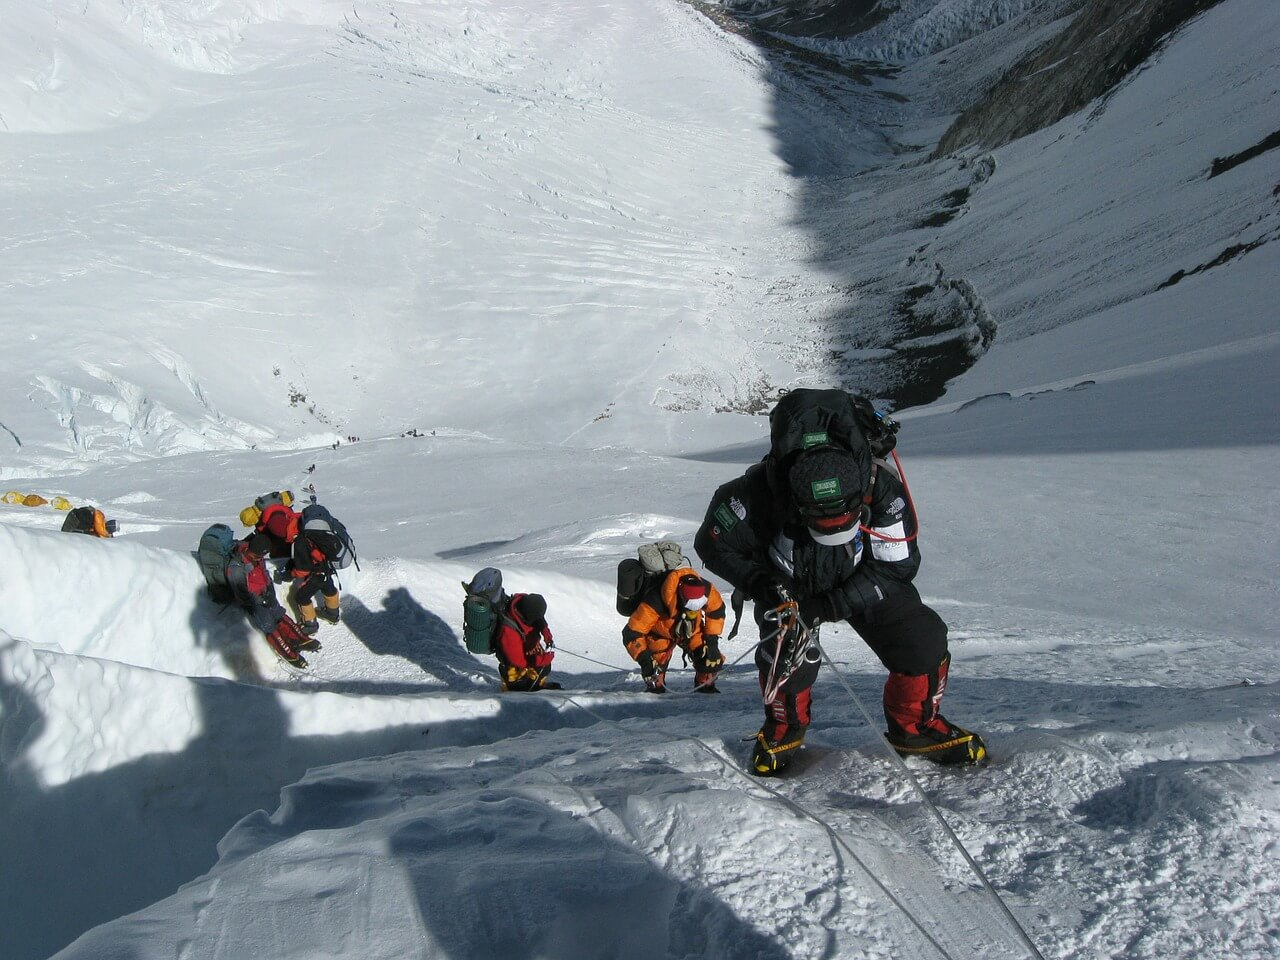 Everest expedition in spring season